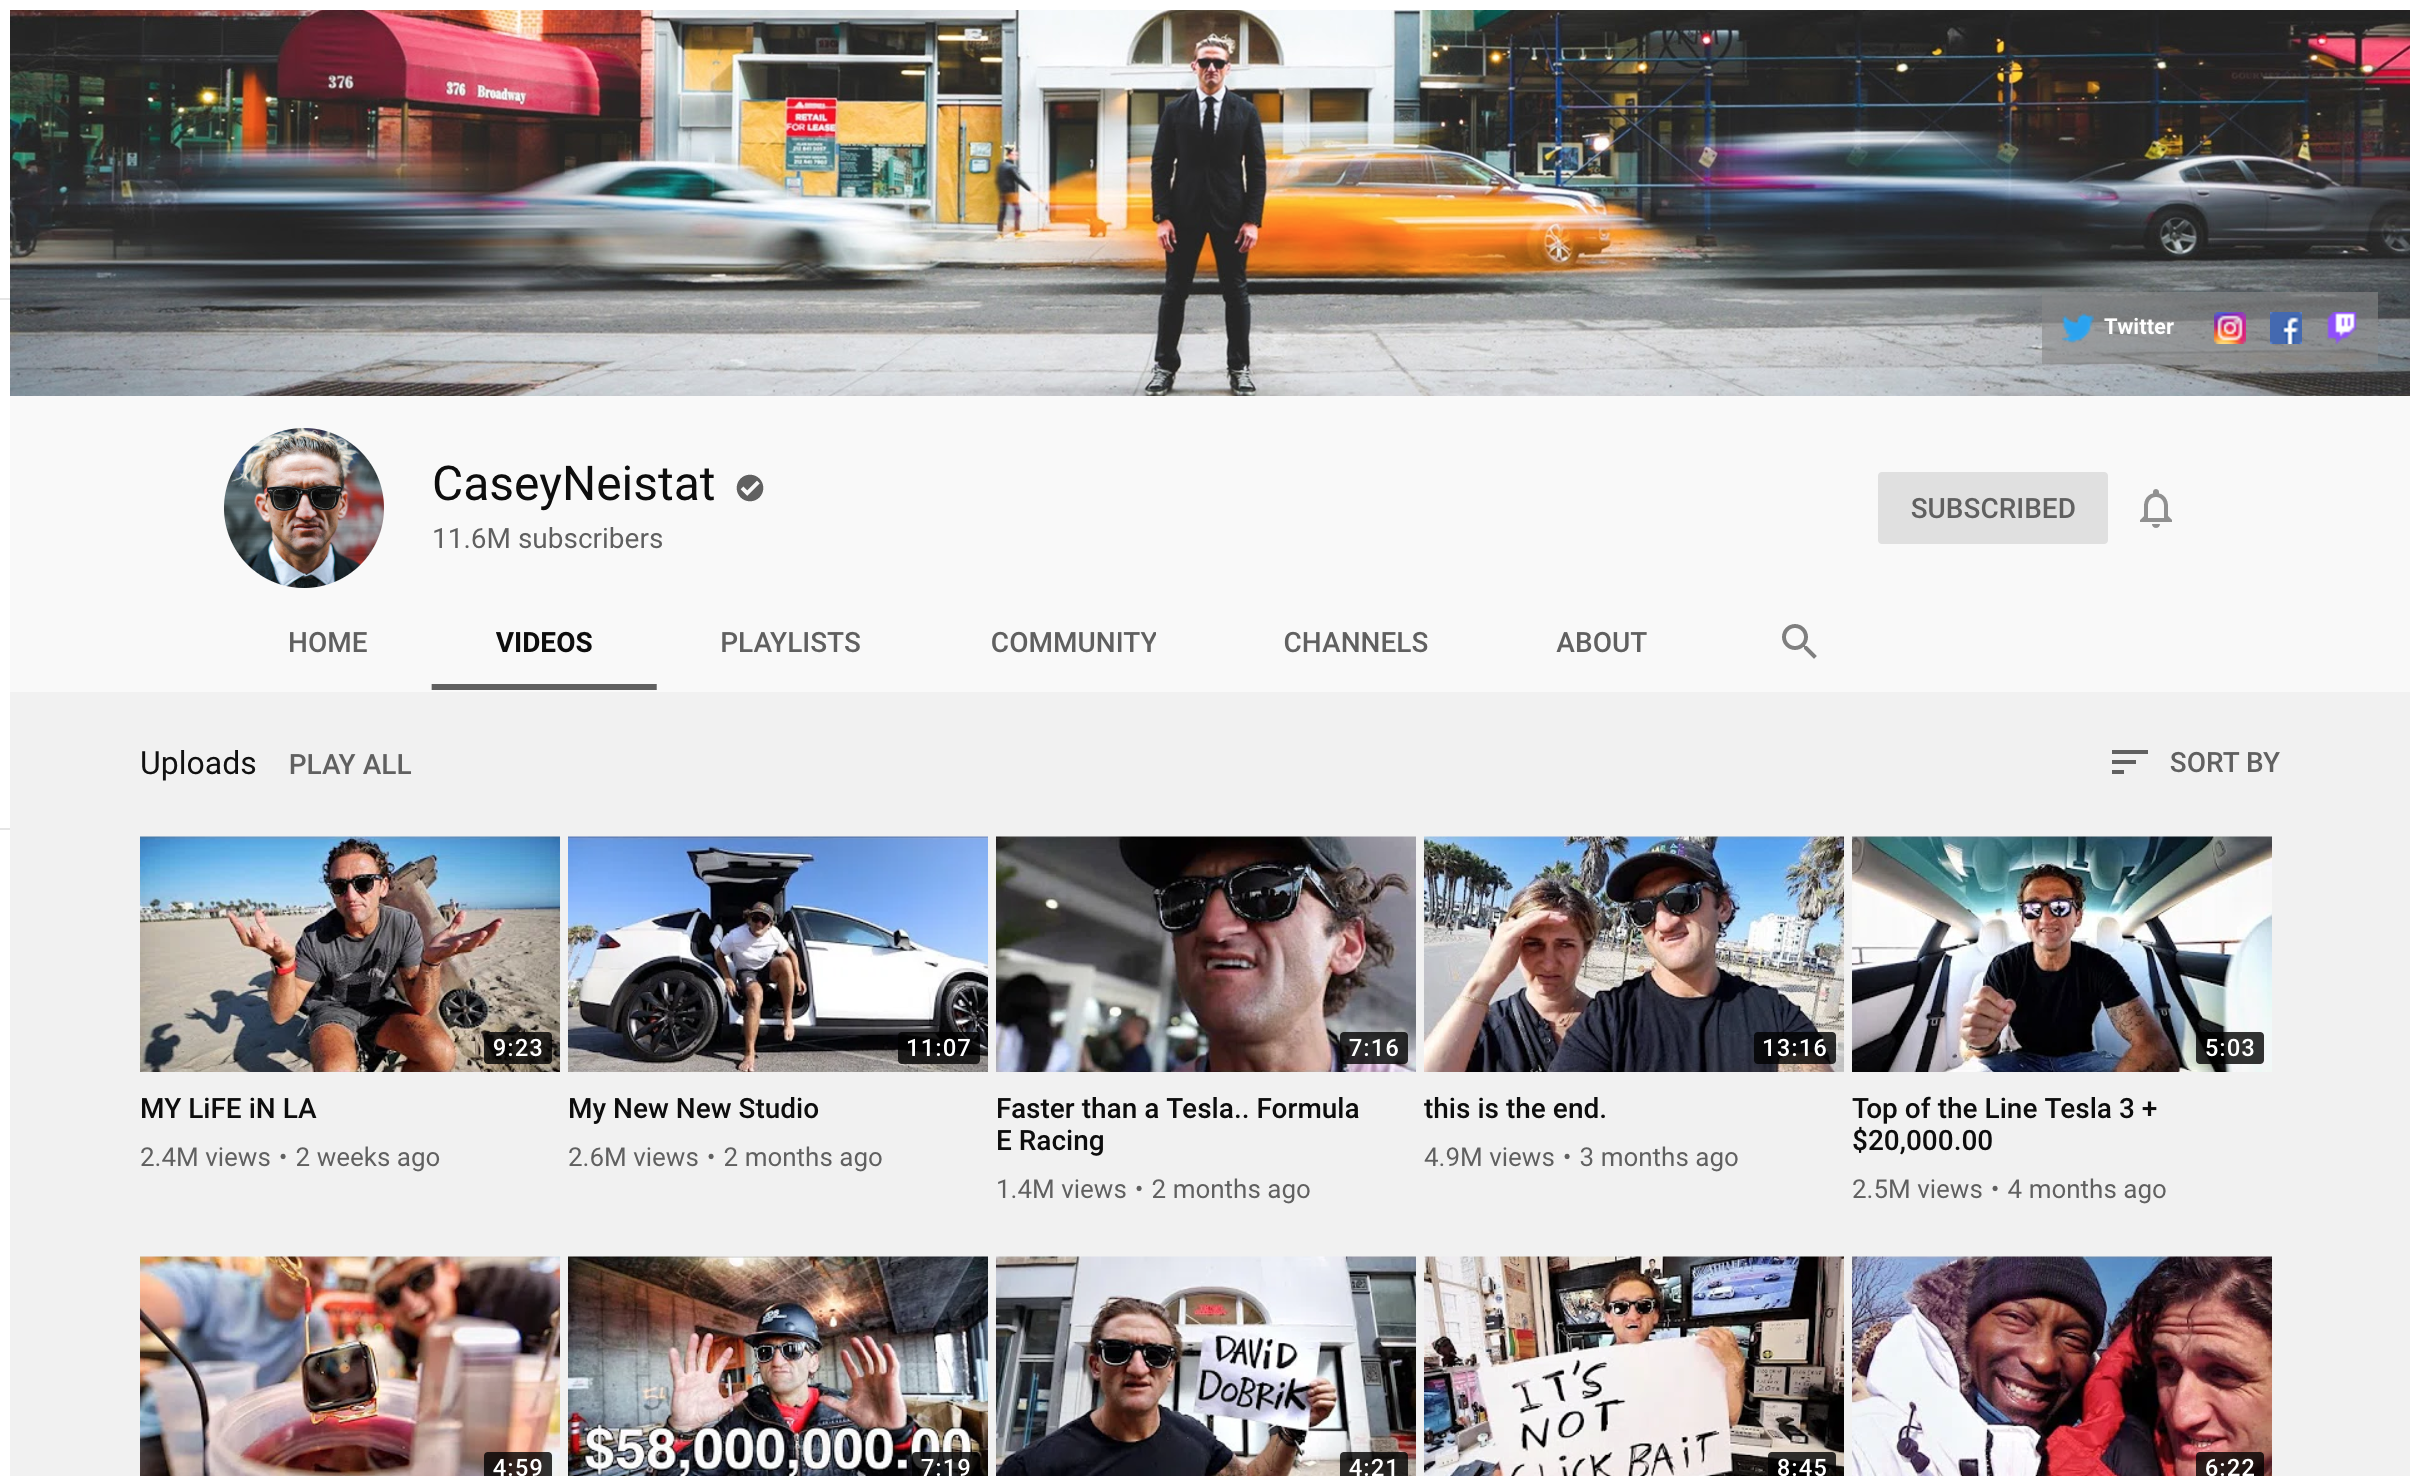 example of Casey Neistat's vlog